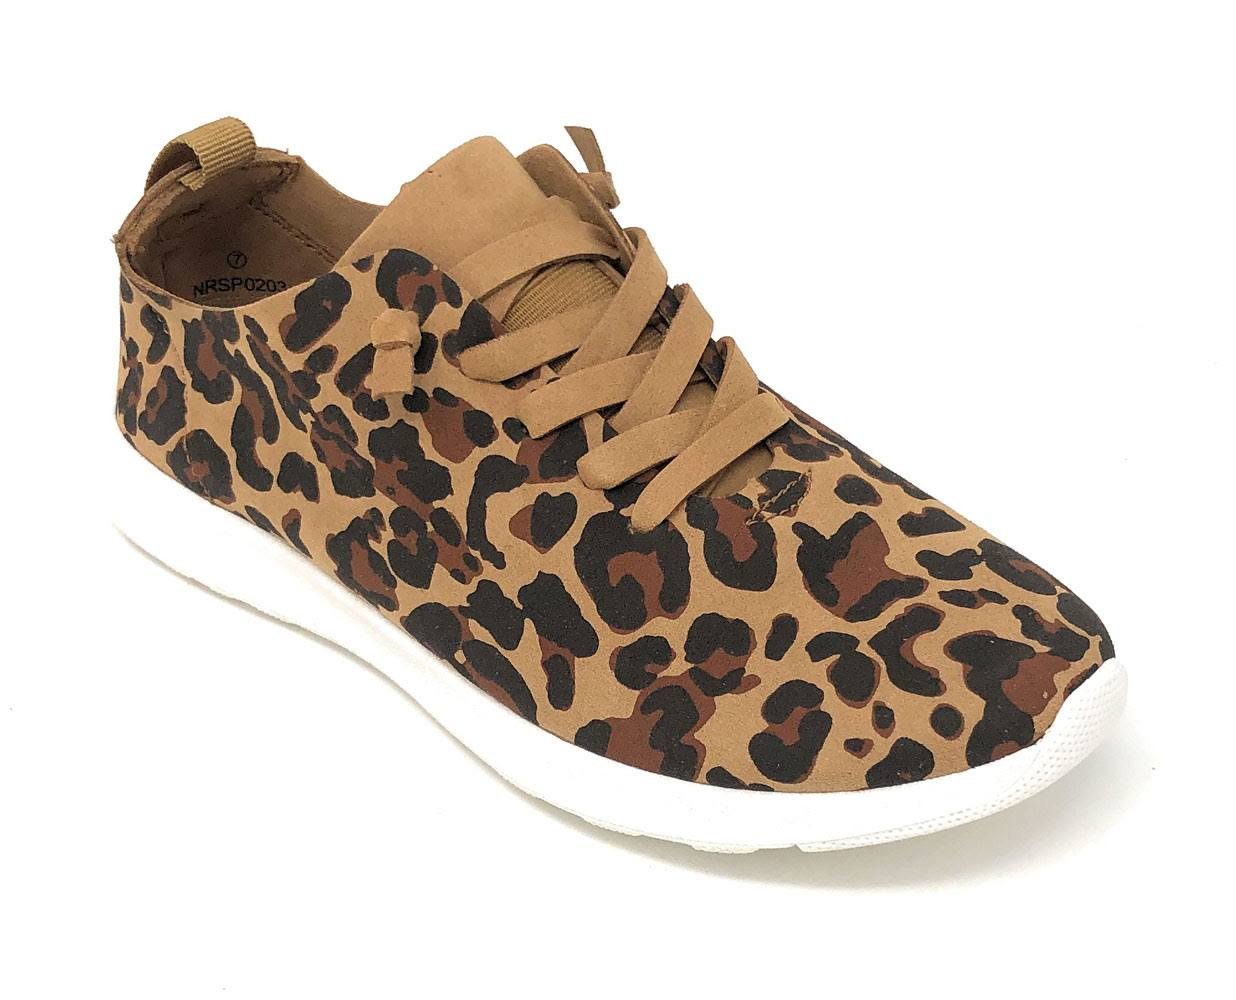 Not Rated Women's Mayo Oxford Shoes - Leopard, 10 US